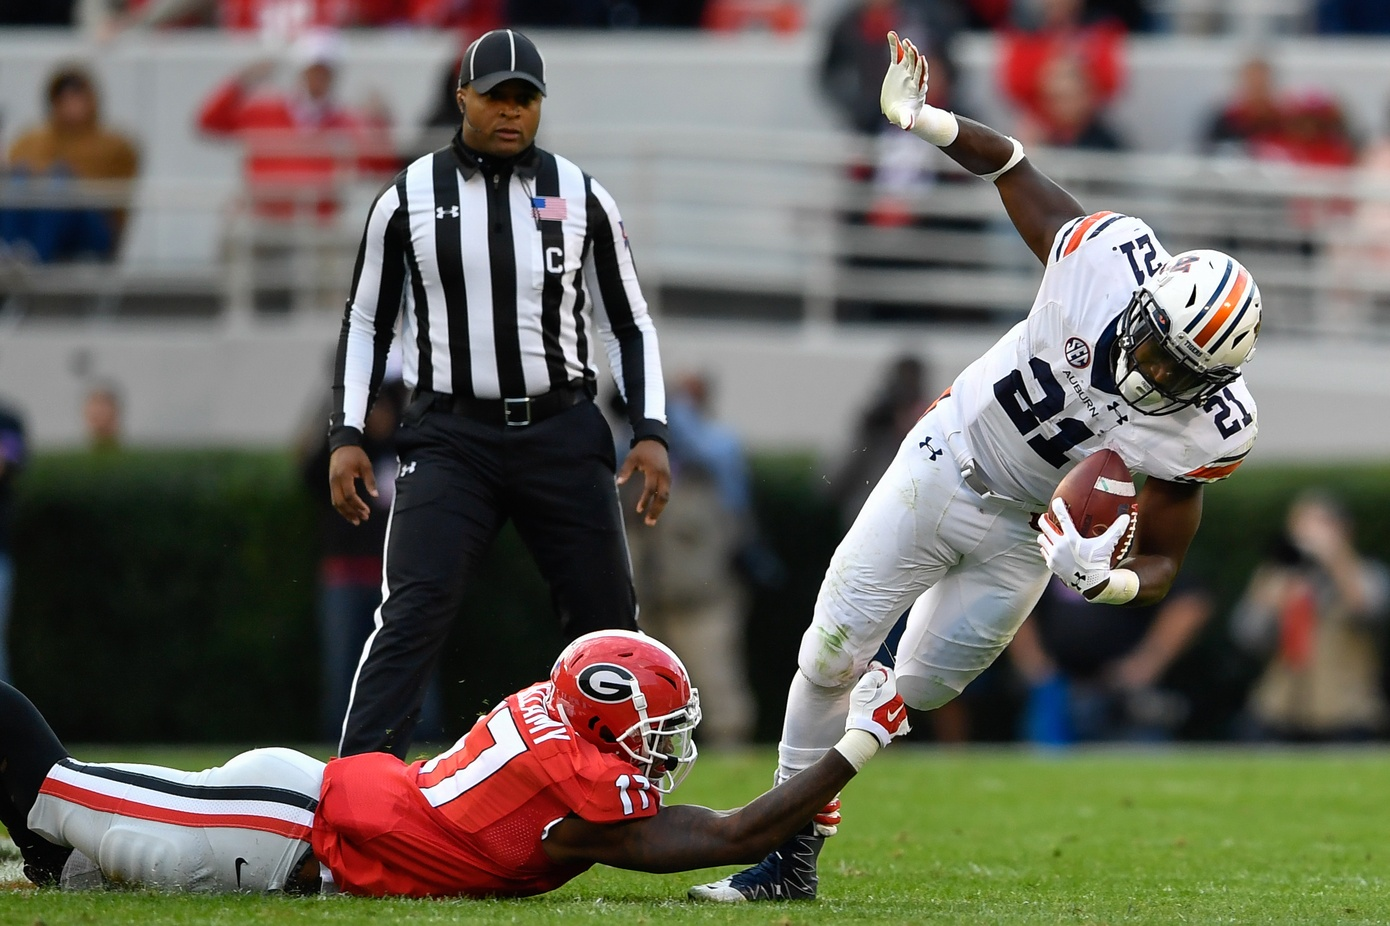 Nov 12, 2016; Athens, GA, USA; Auburn Tigers running back Kerryon Johnson (21) is tackled by Georgia Bulldogs linebacker Davin Bellamy (17) during the second quarter at Sanford Stadium. Mandatory Credit: Dale Zanine-USA TODAY Sports